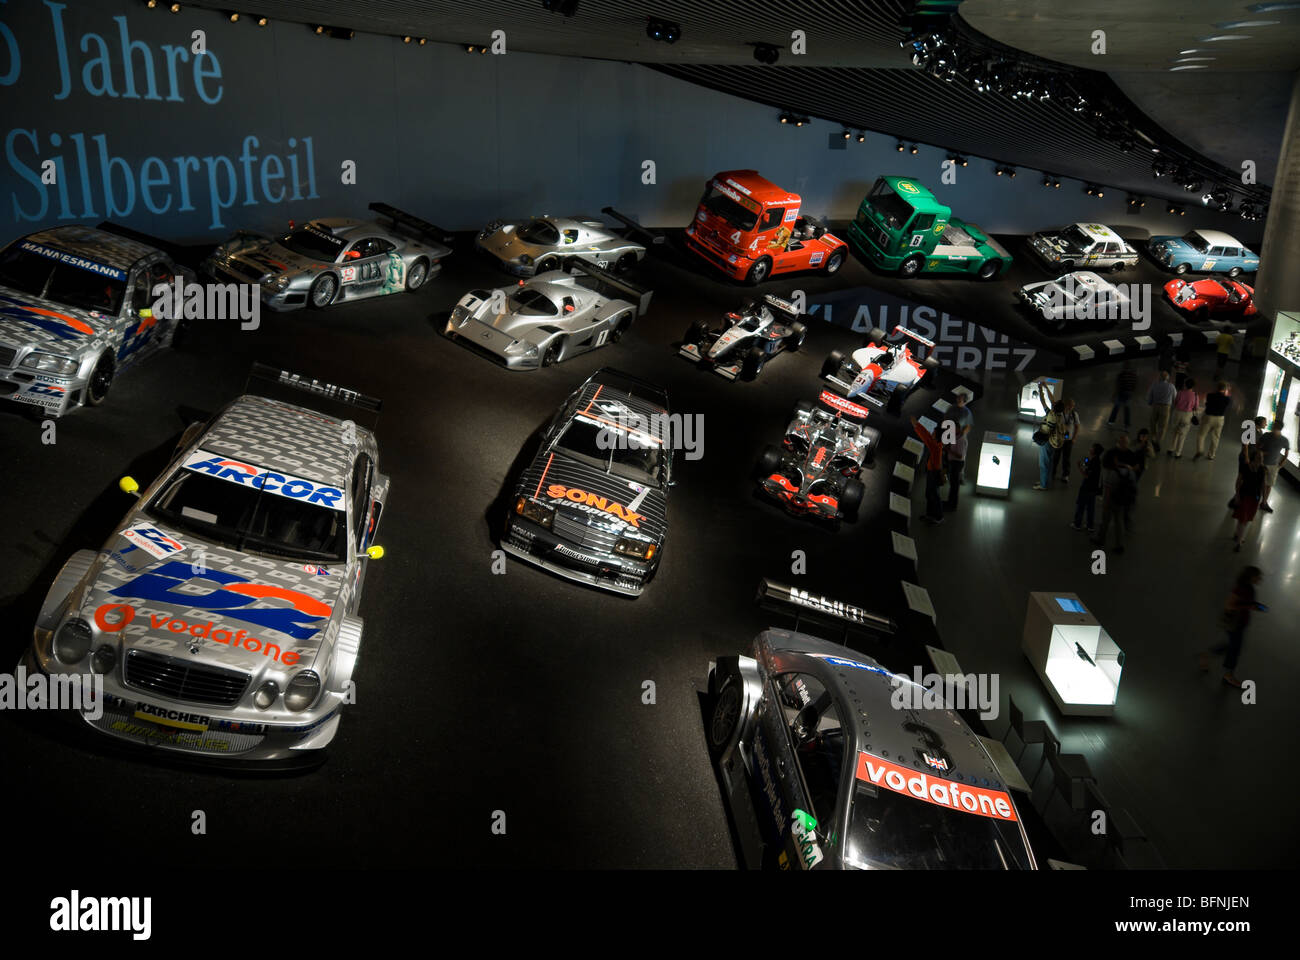 Mercedes cars on display in the Mercedes museum. Stuttgart, Germany - Stock Image